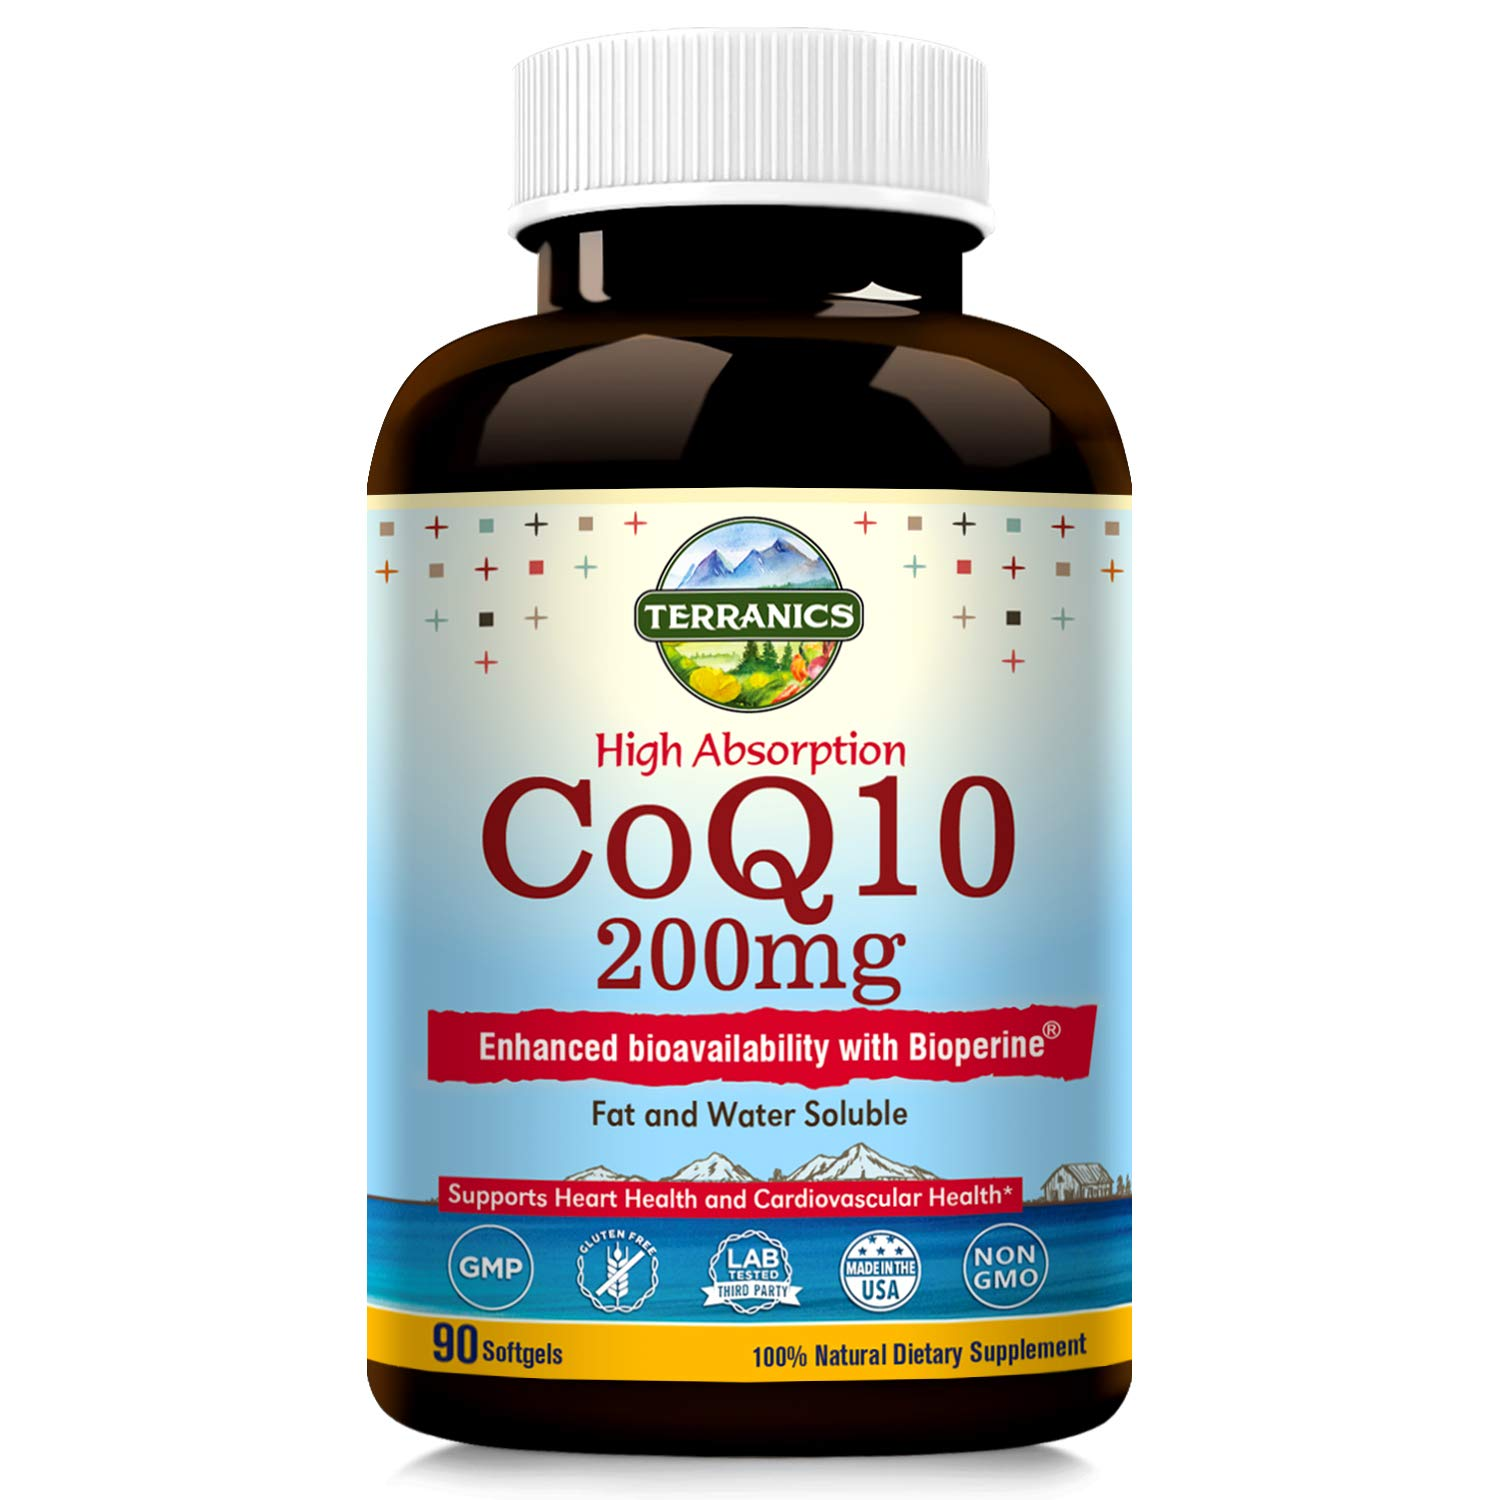 Terranics CoQ10 with BioPerine 200mg, 90 Softgels, Premium Qulity, 3X Better Absorption, Water and Fat Soluble, Supports Heart Health and Energy Production, Non-GMO, Soy, Dairy & Gluten Free, for Men by Terranics